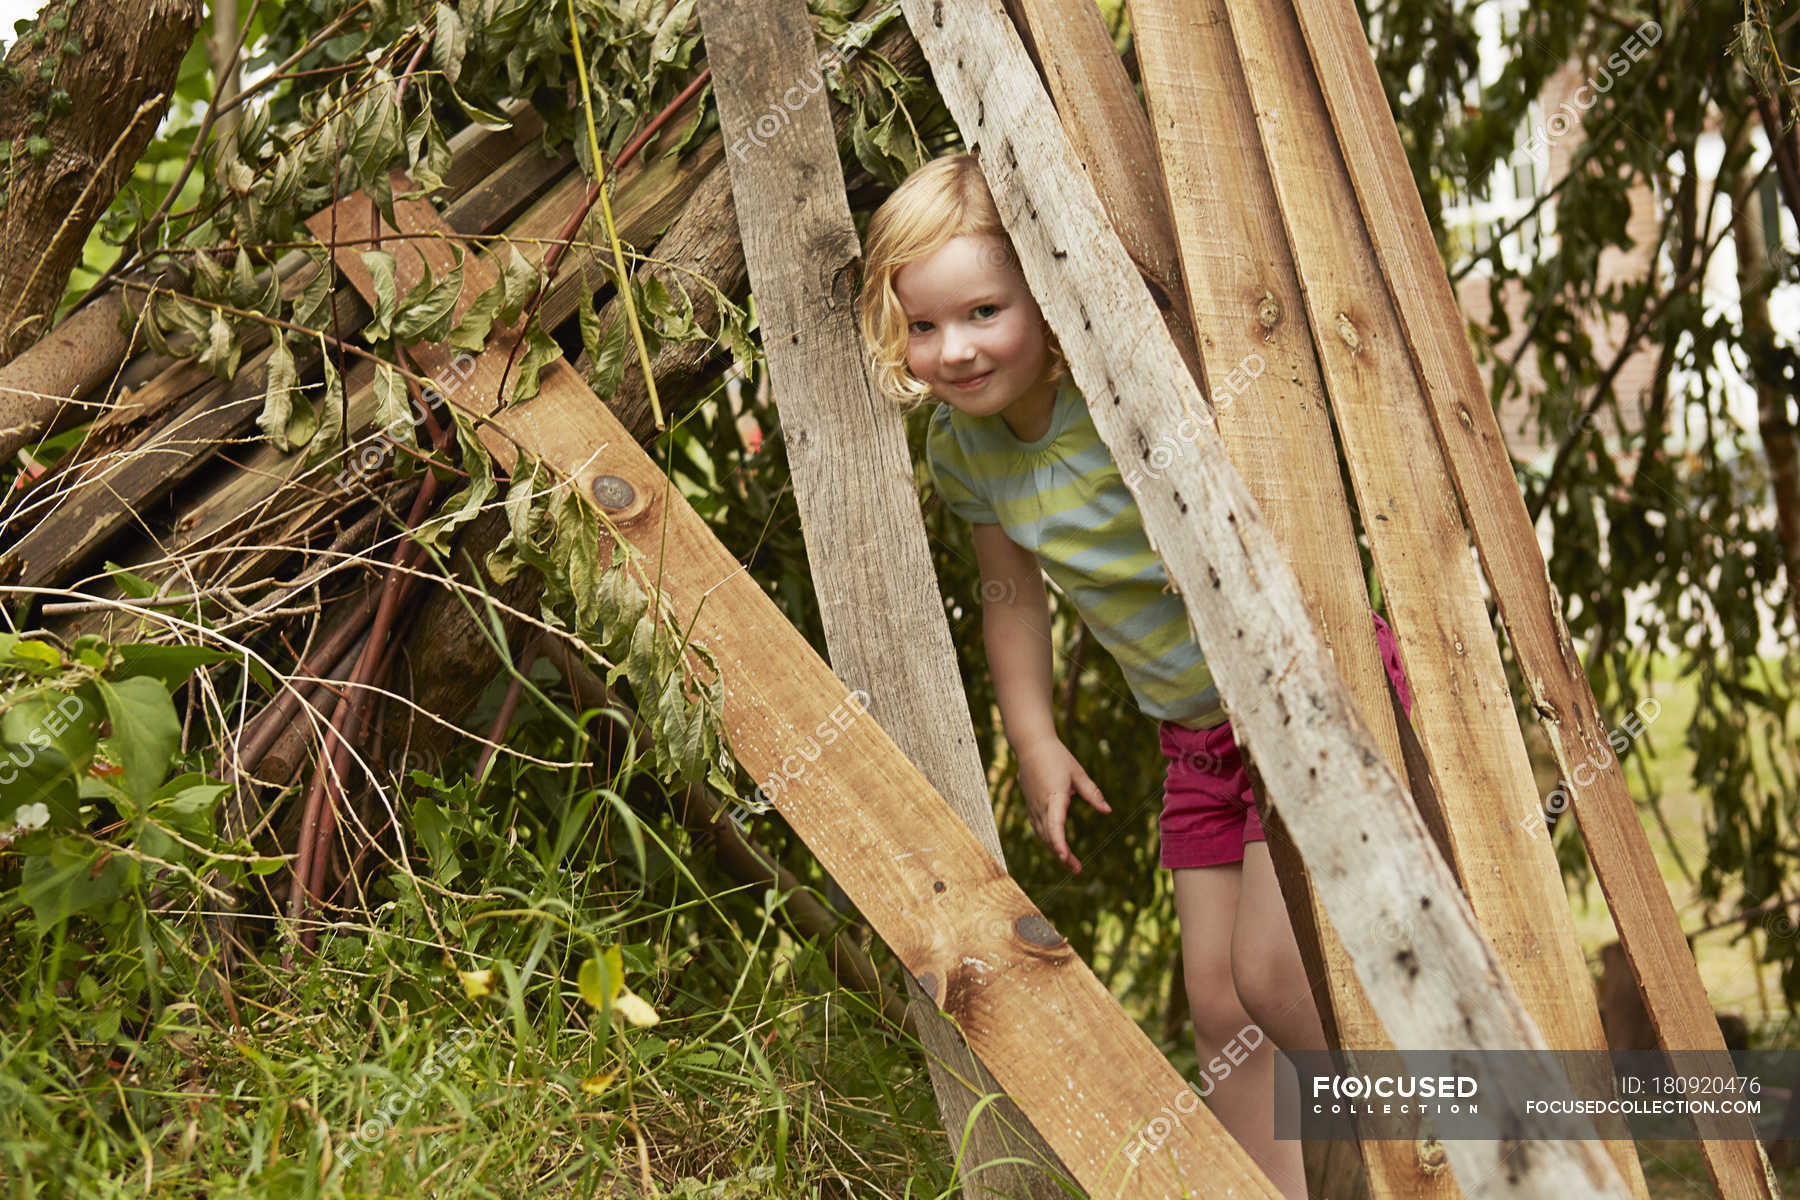 Portrait of girl hiding in garden den — Stock Photo | #180920476